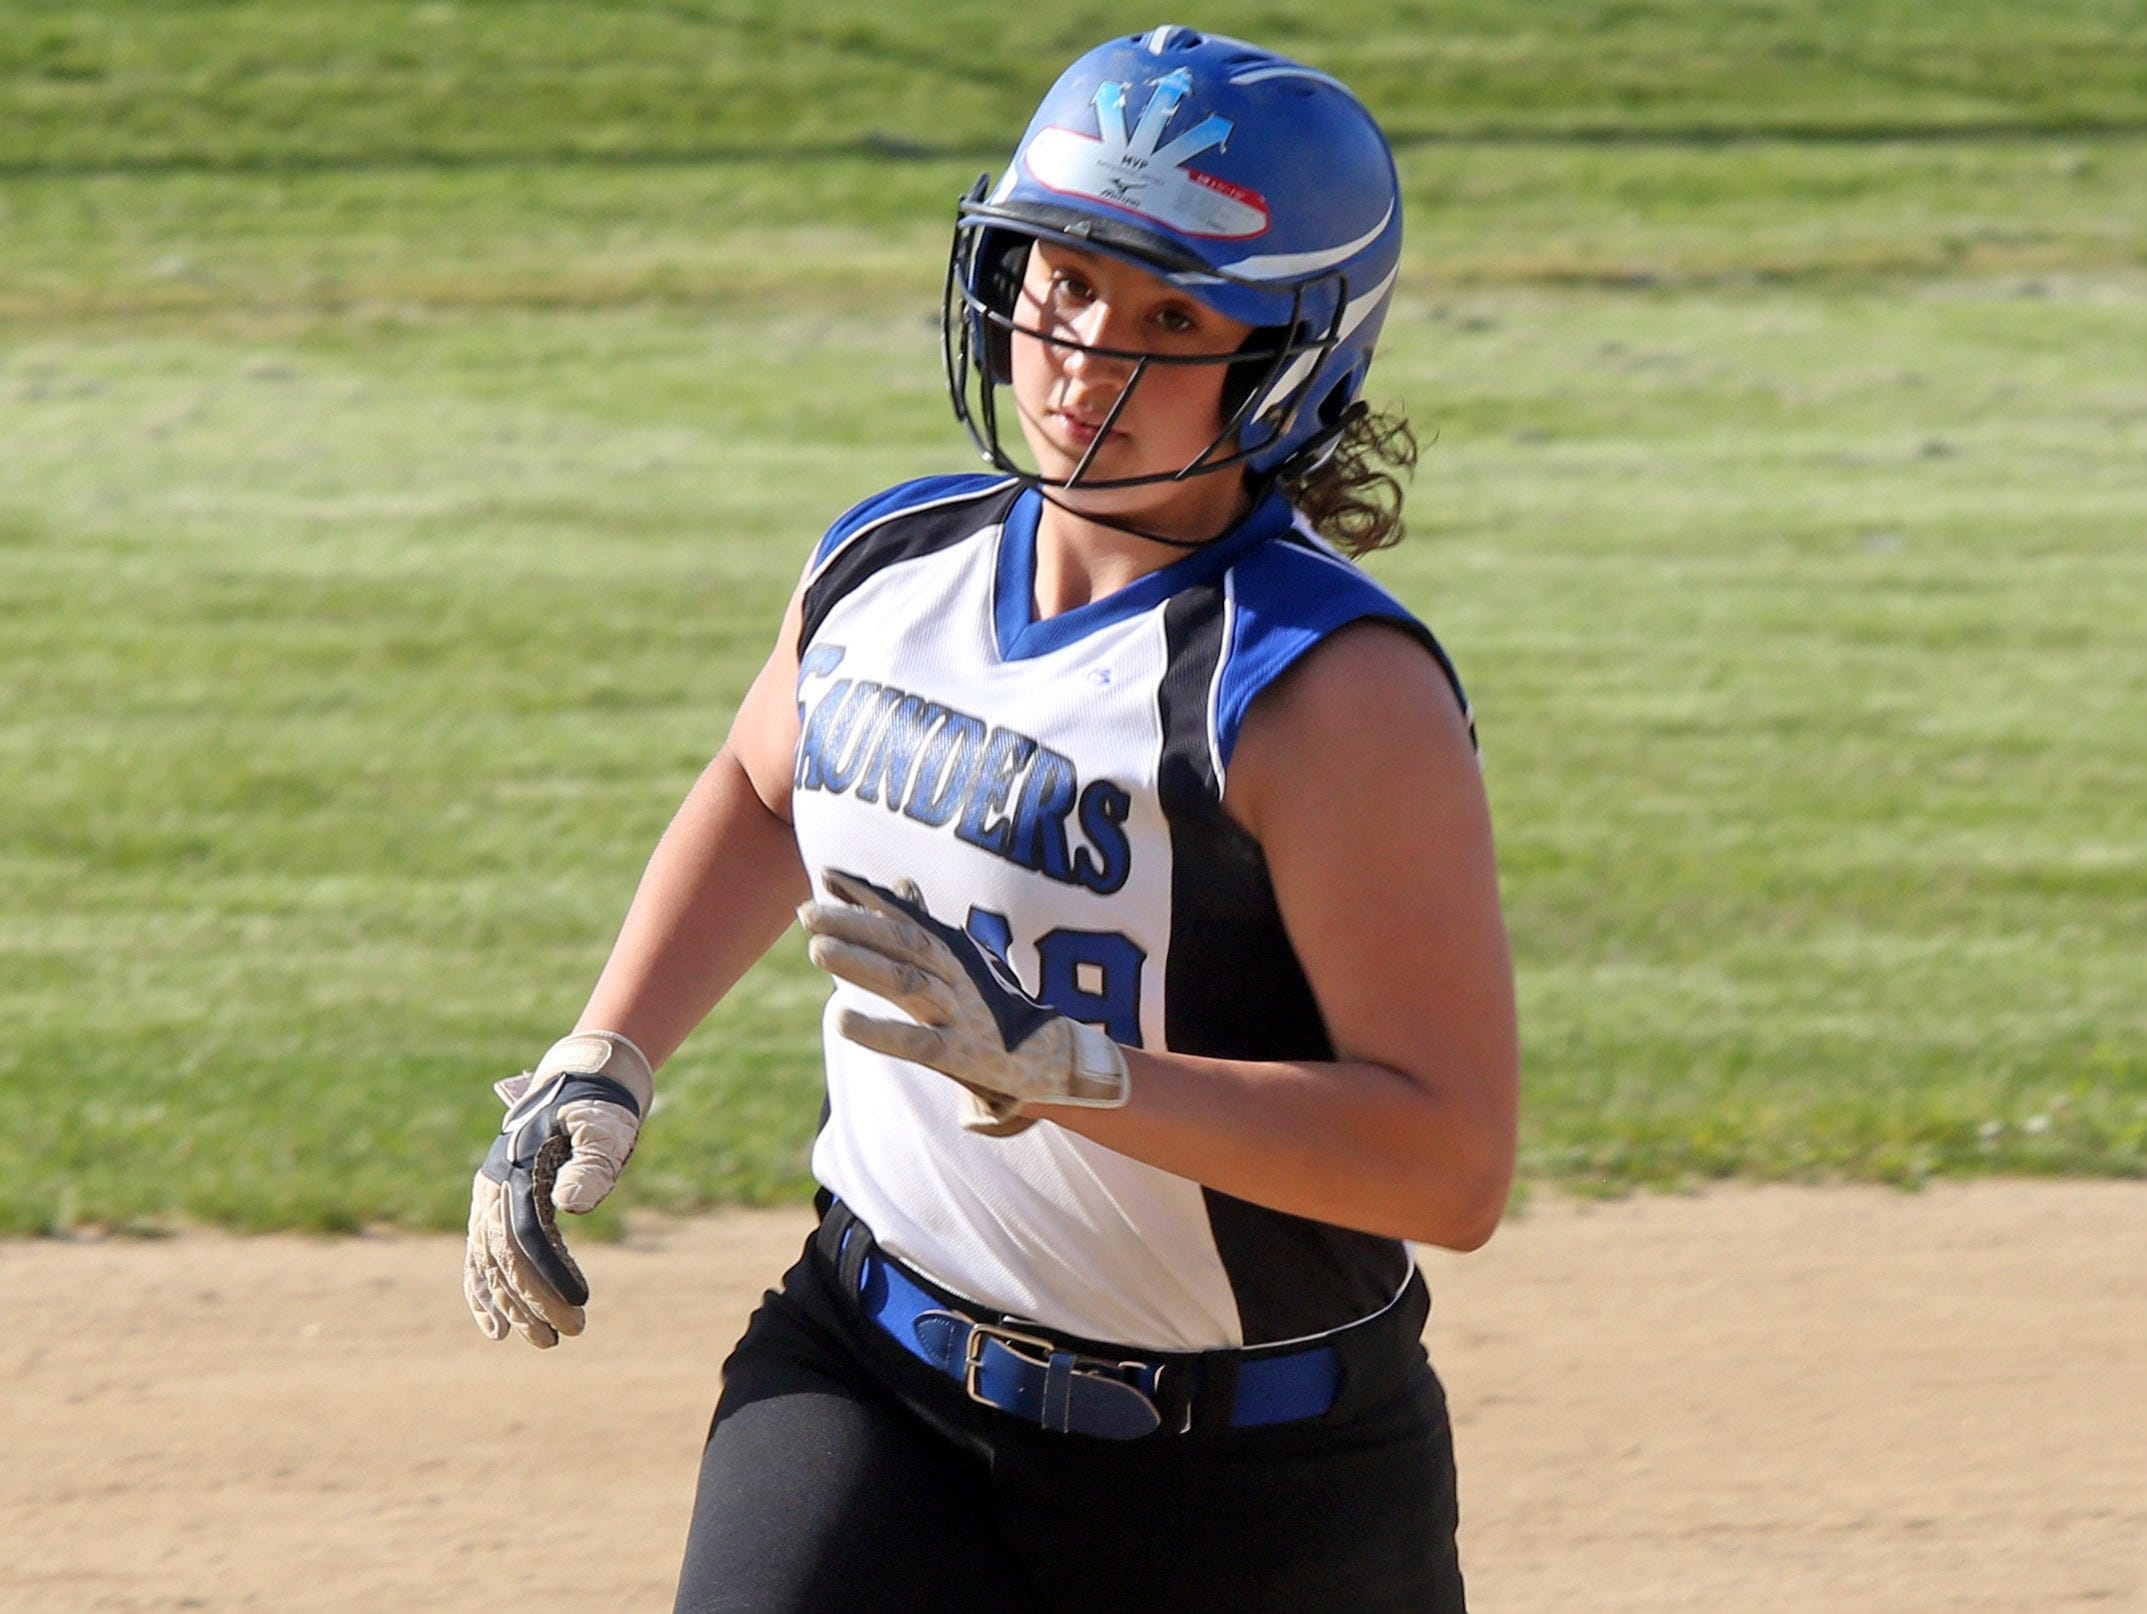 Cassidy Montes (19) of Saunders rounds the bases during Class AA first round playoff softball game against White Plains at Saunders High School in Yonkers on May 20, 2016.